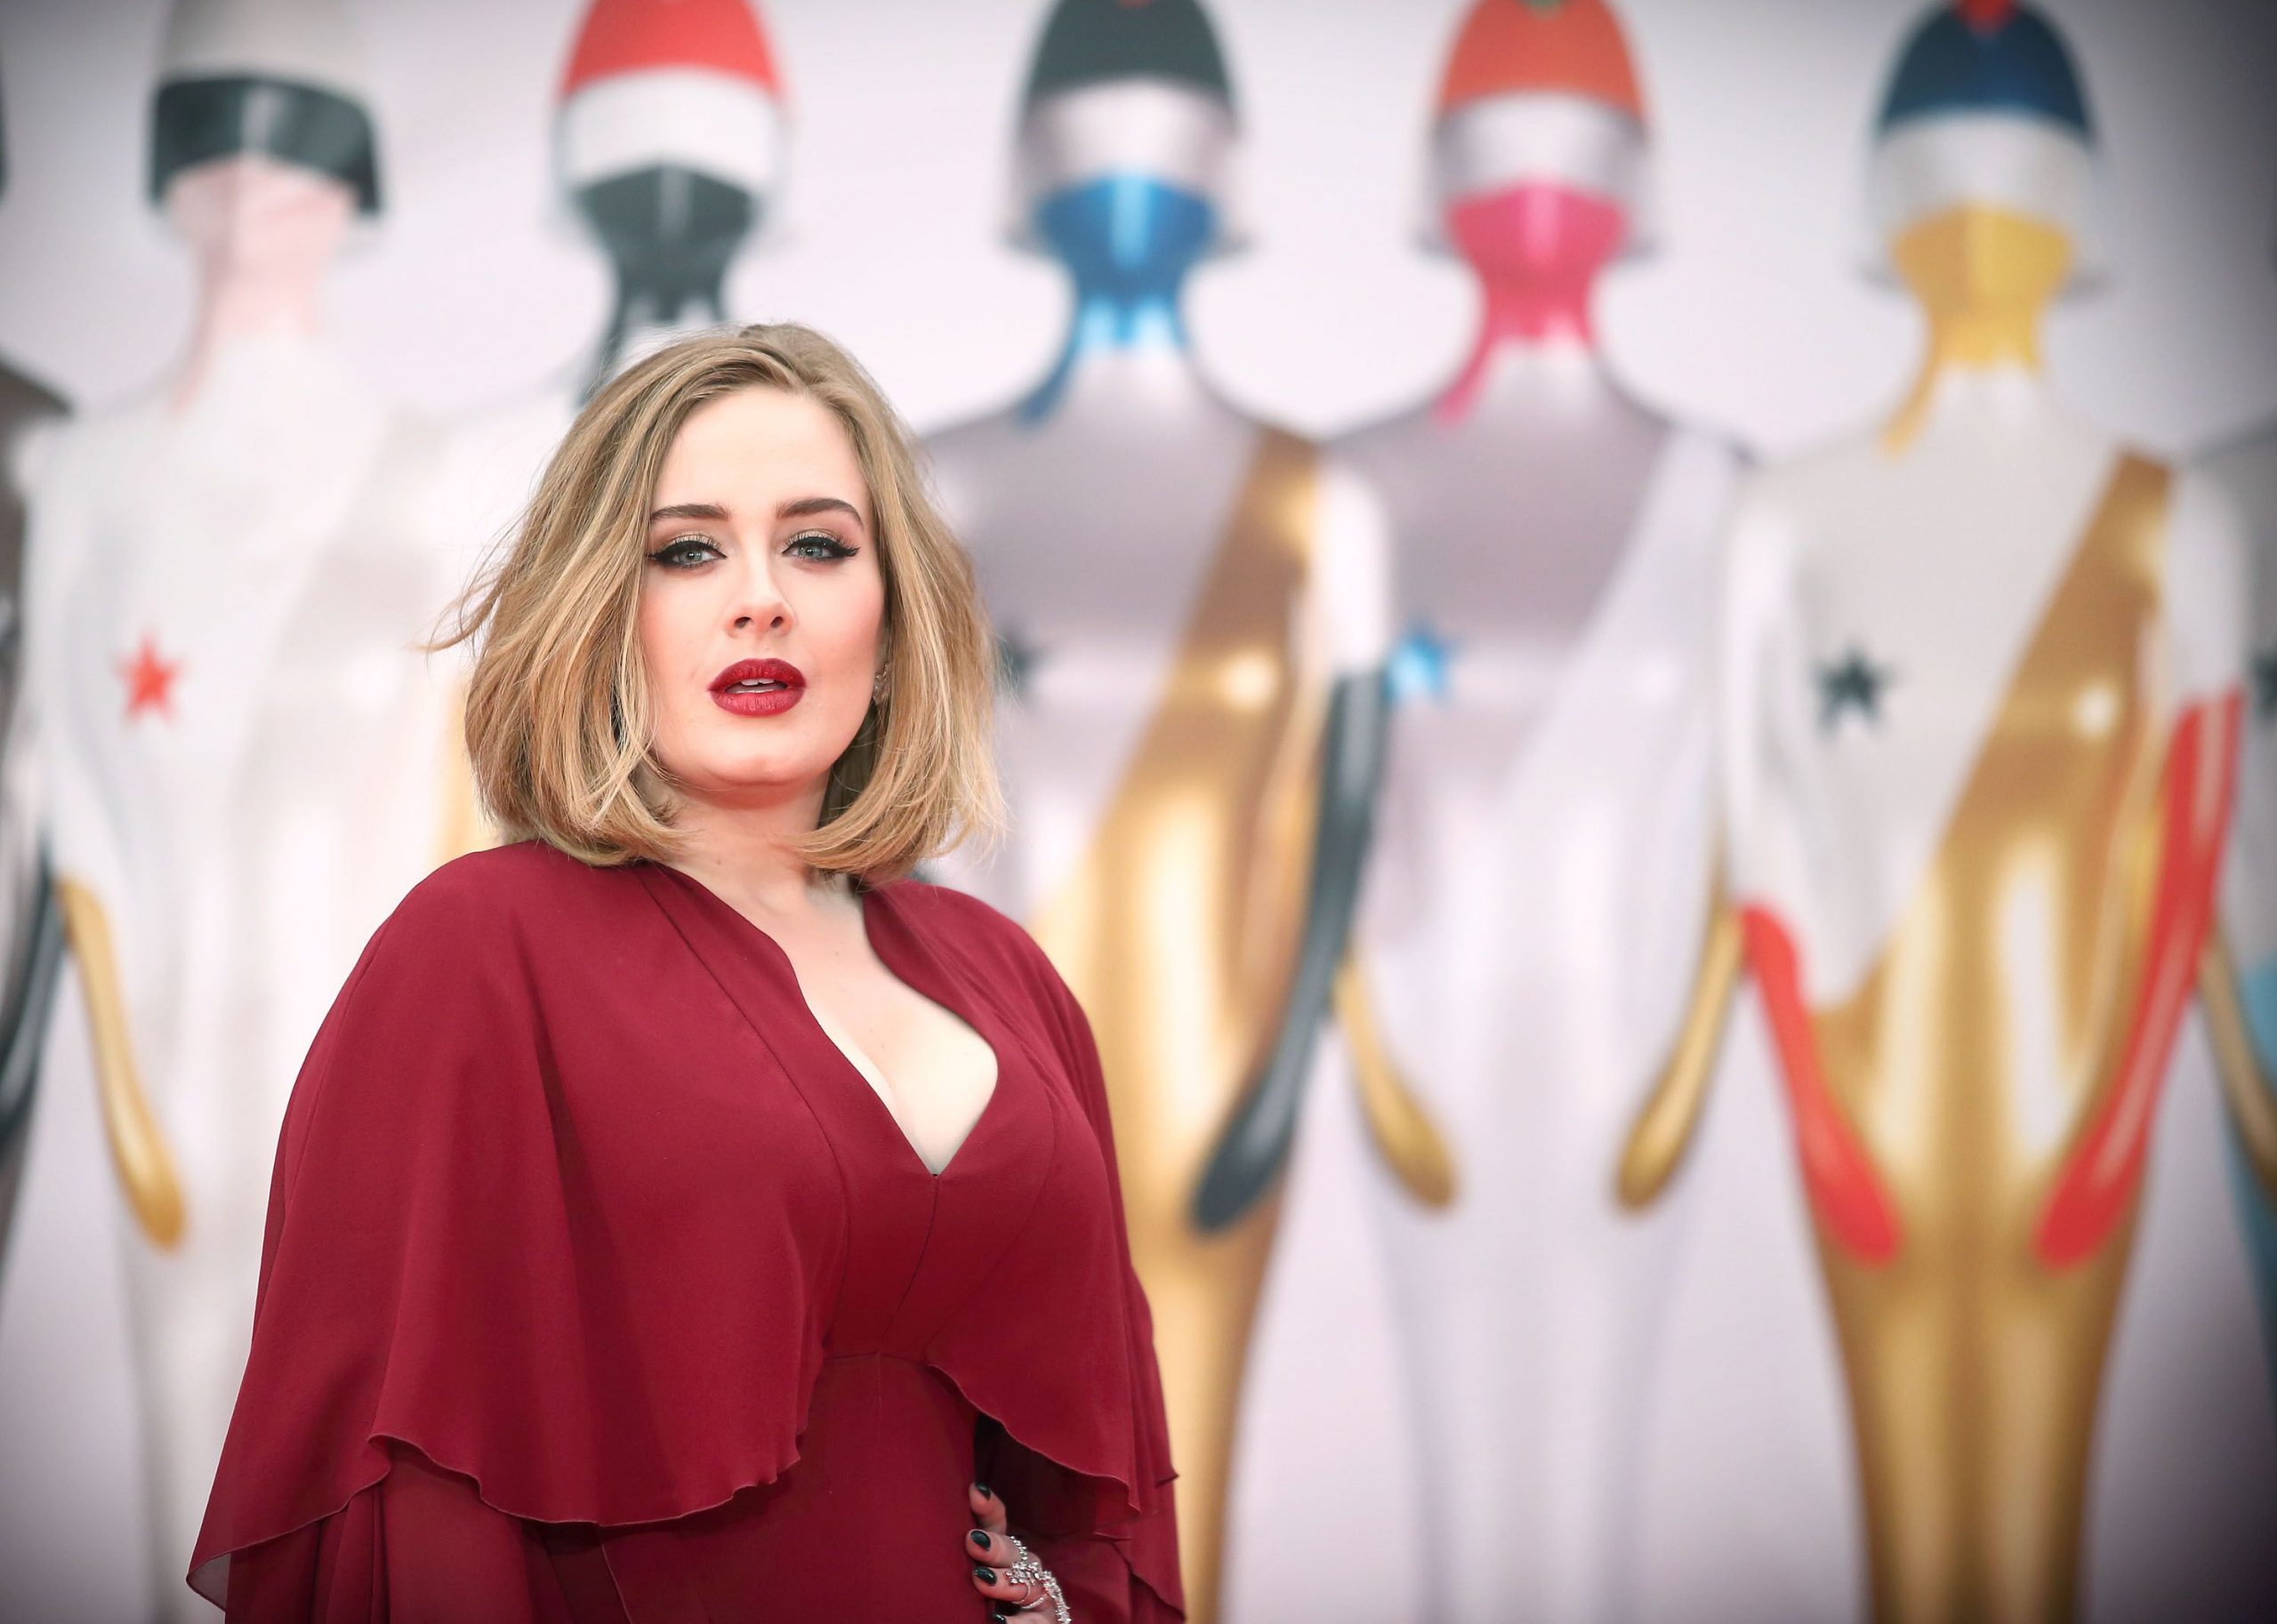 Adele Wiki, Age, Height, Weight, Biography, Net Worth 2021 and Career Details